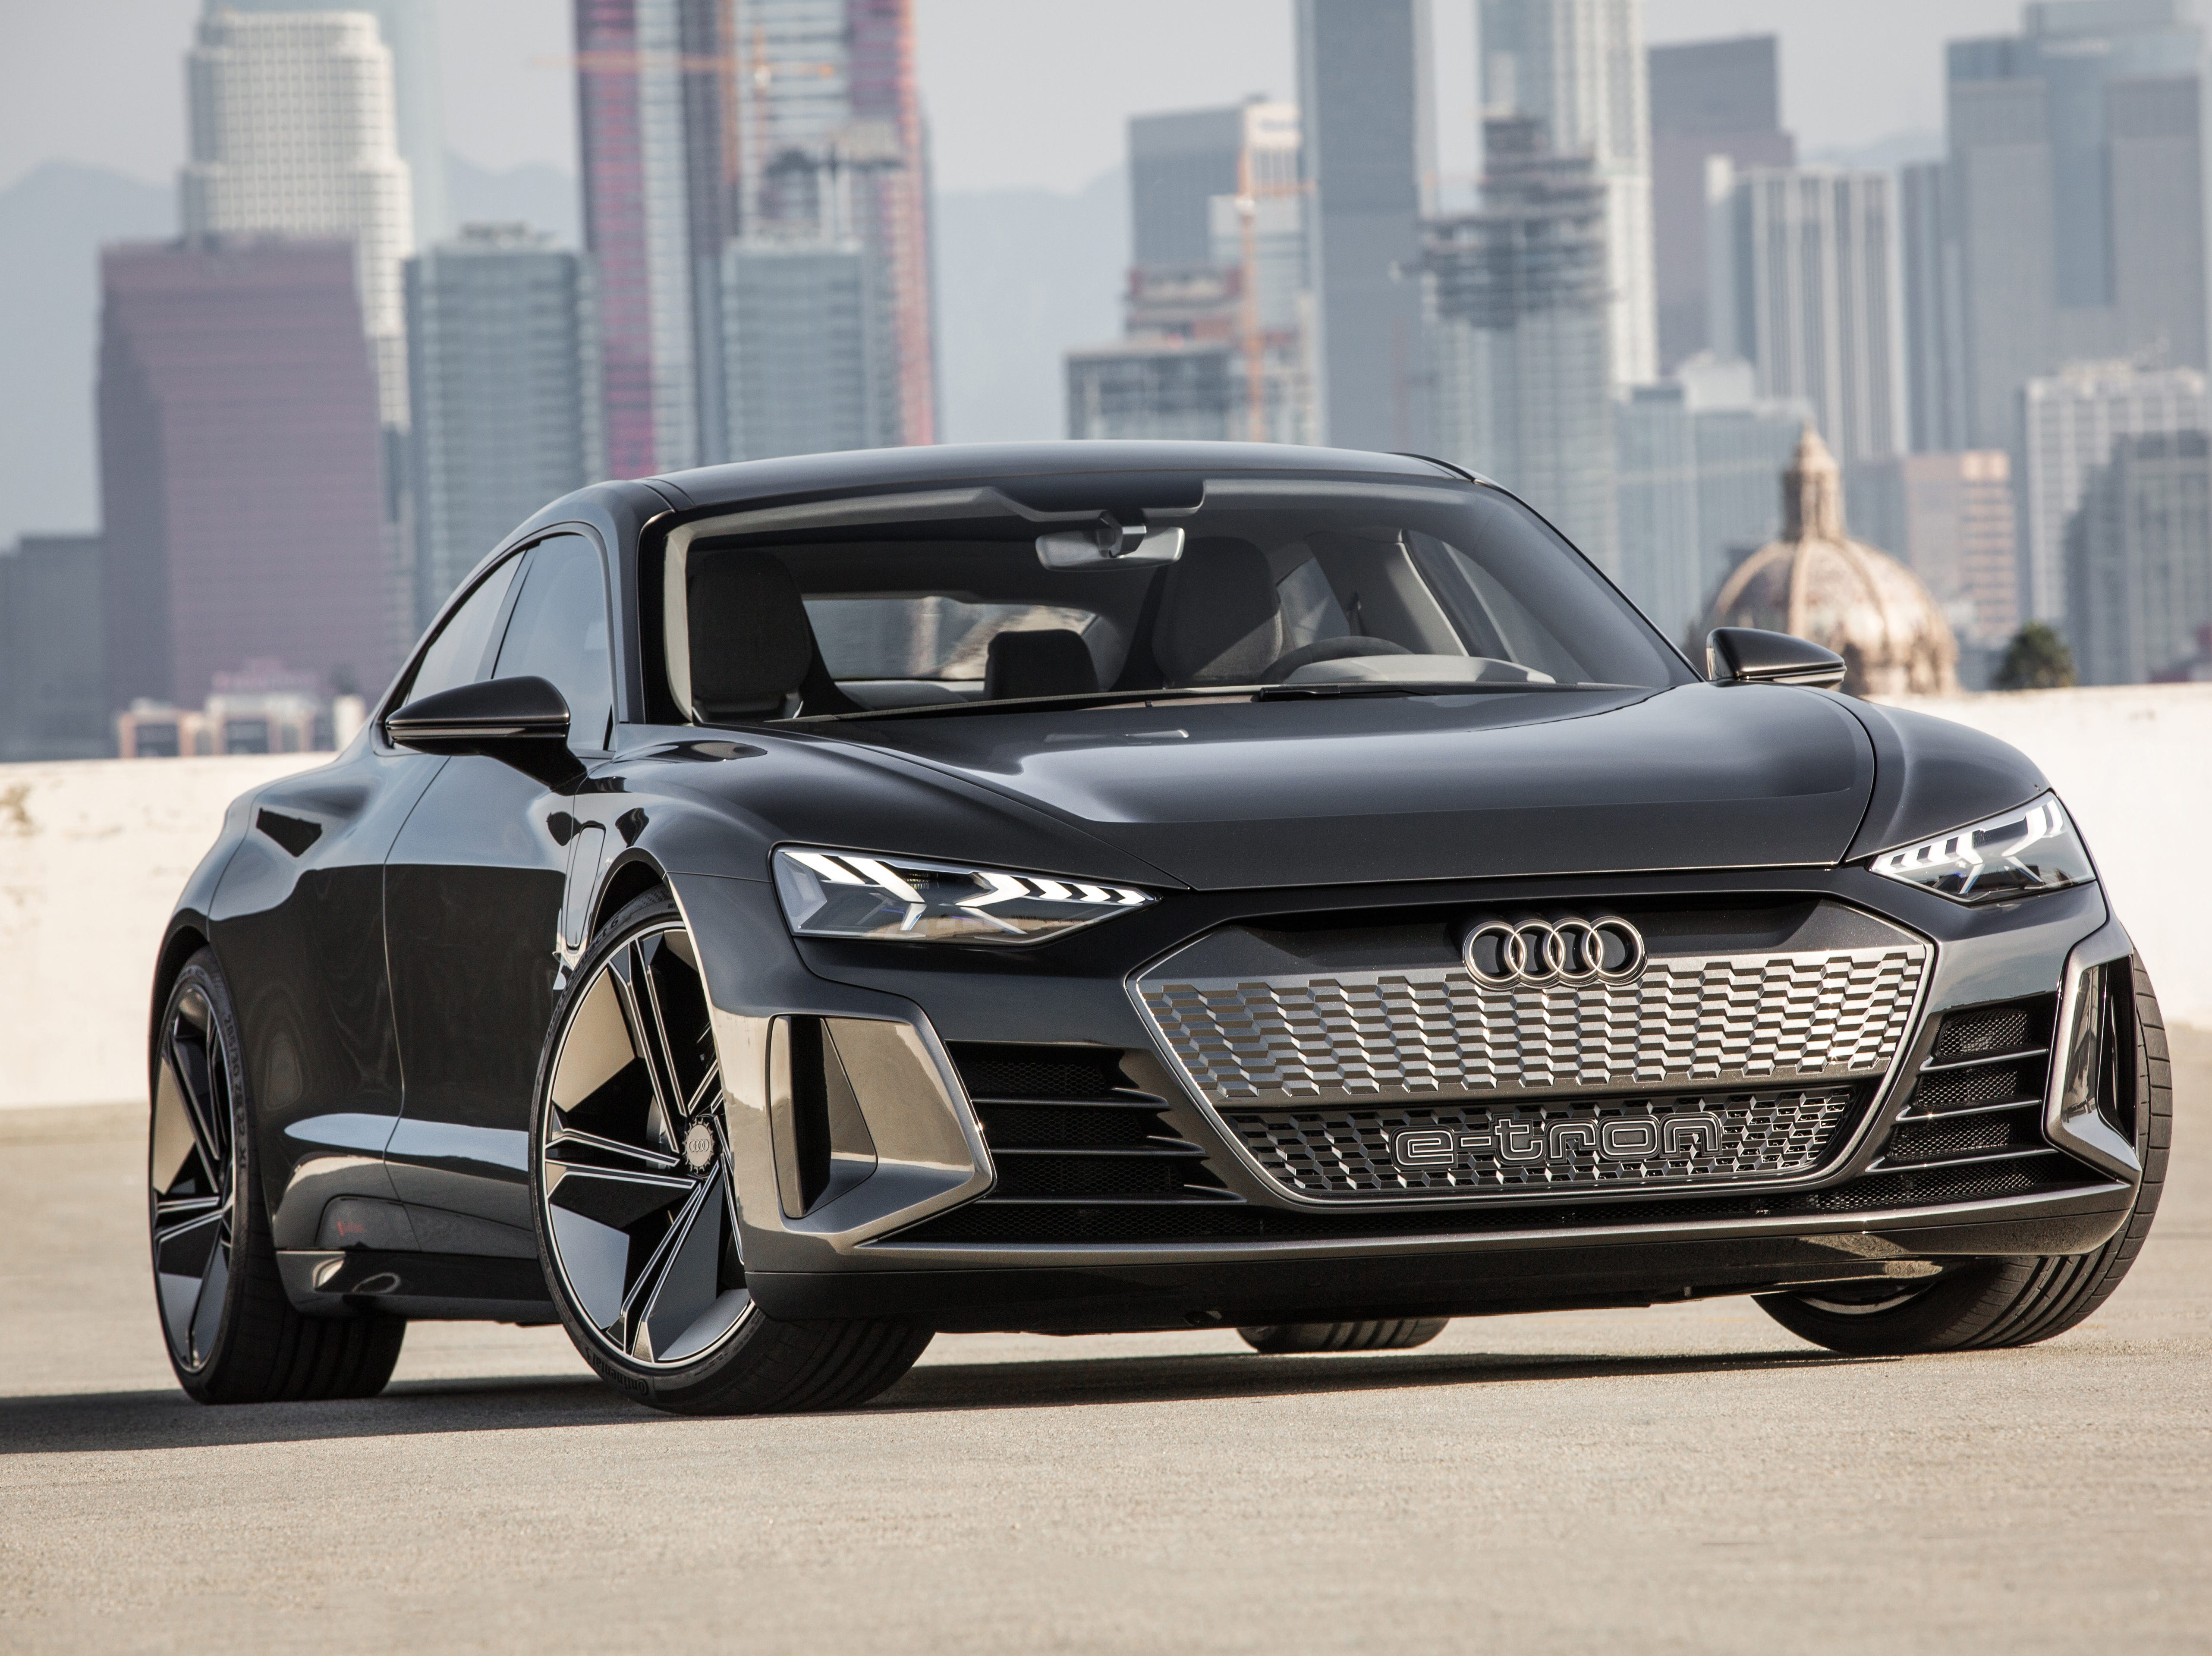 The electric powered Audi e-tron GT concept four-door coupe